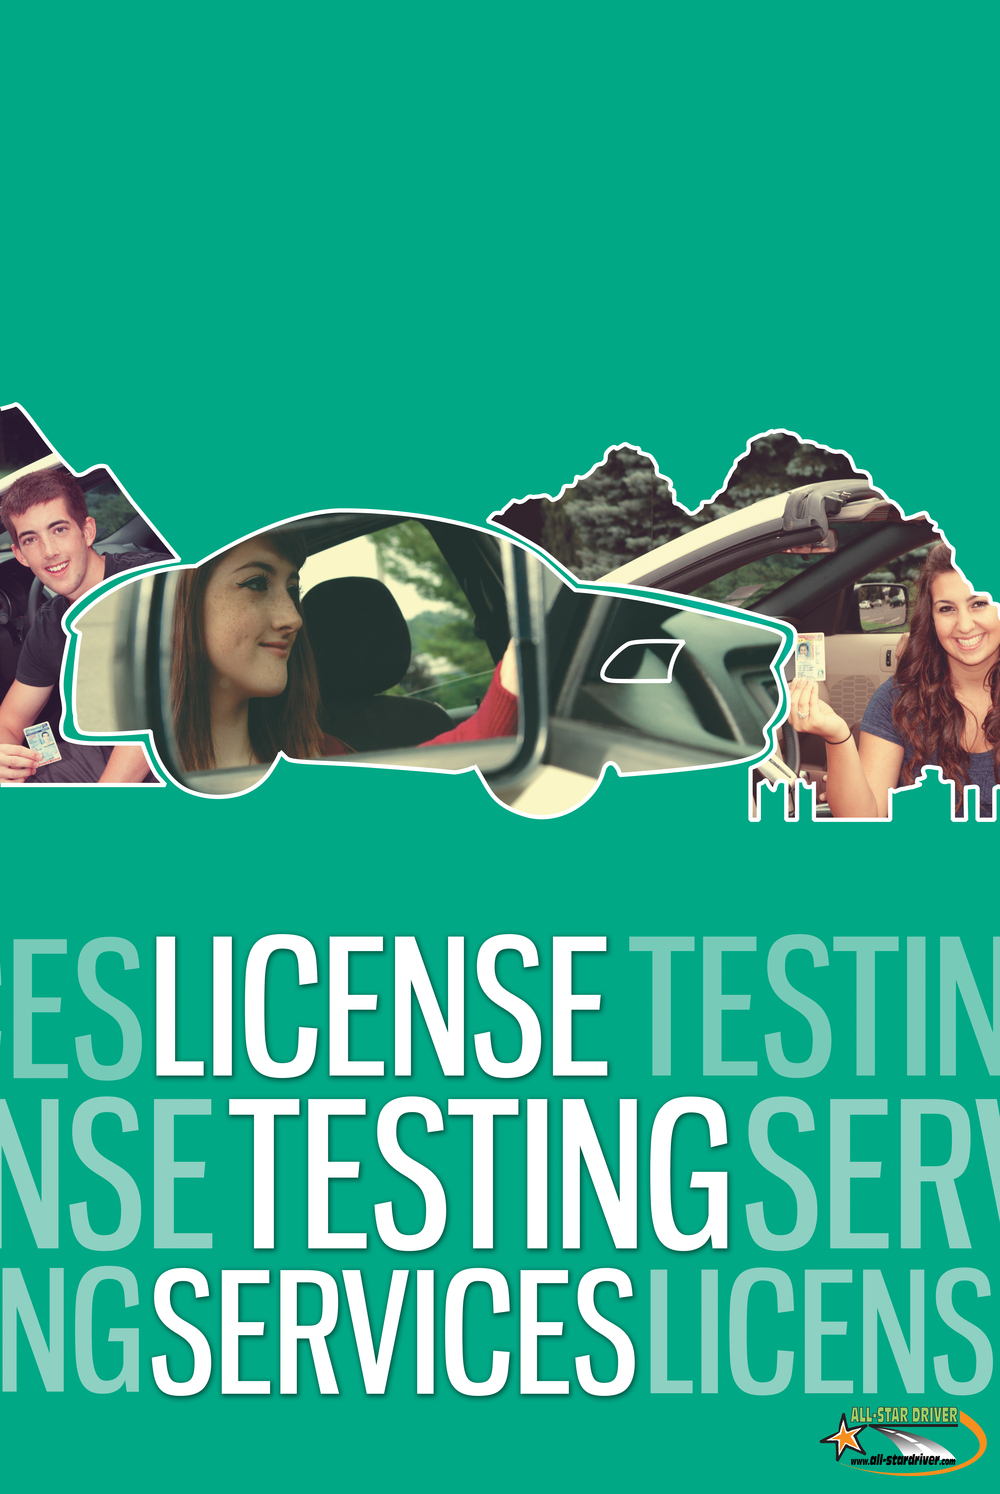 ASD Poster License Testing Services.jpg